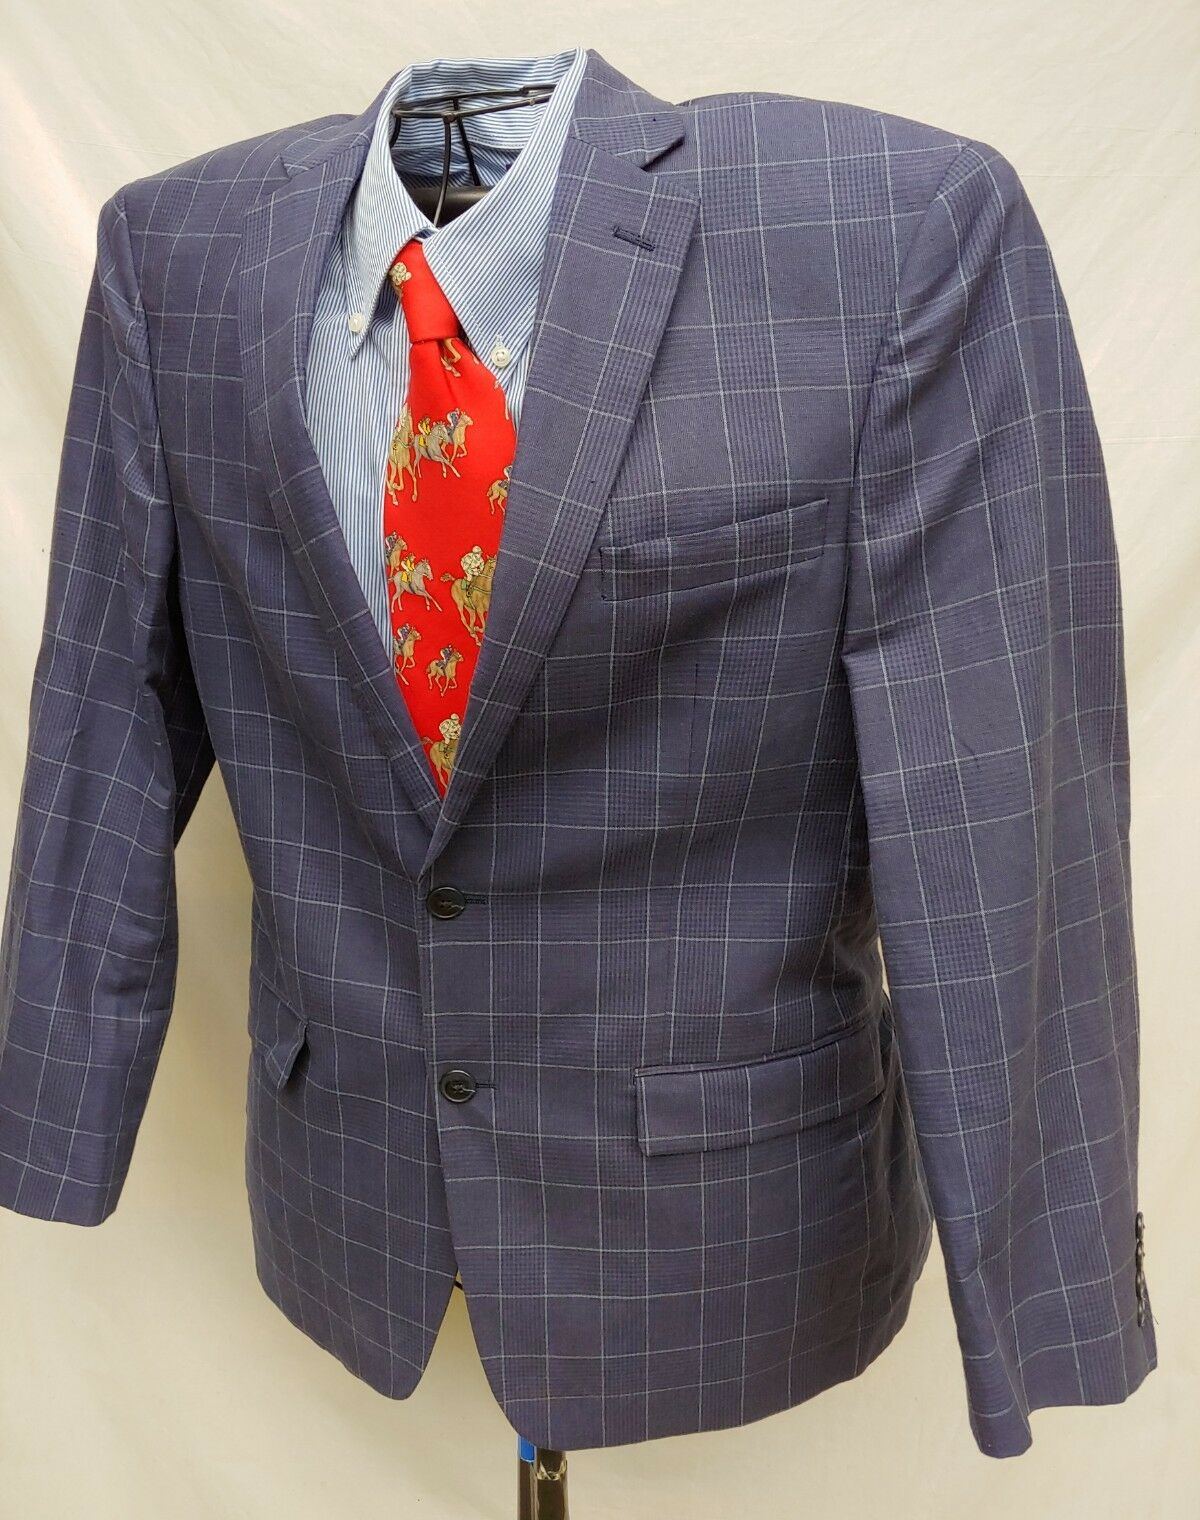 VANHEUSEN STUDIO 38R SPORT COAT NAVY Blau WINDOWPANE LINEN BLEND BLAZER LINED